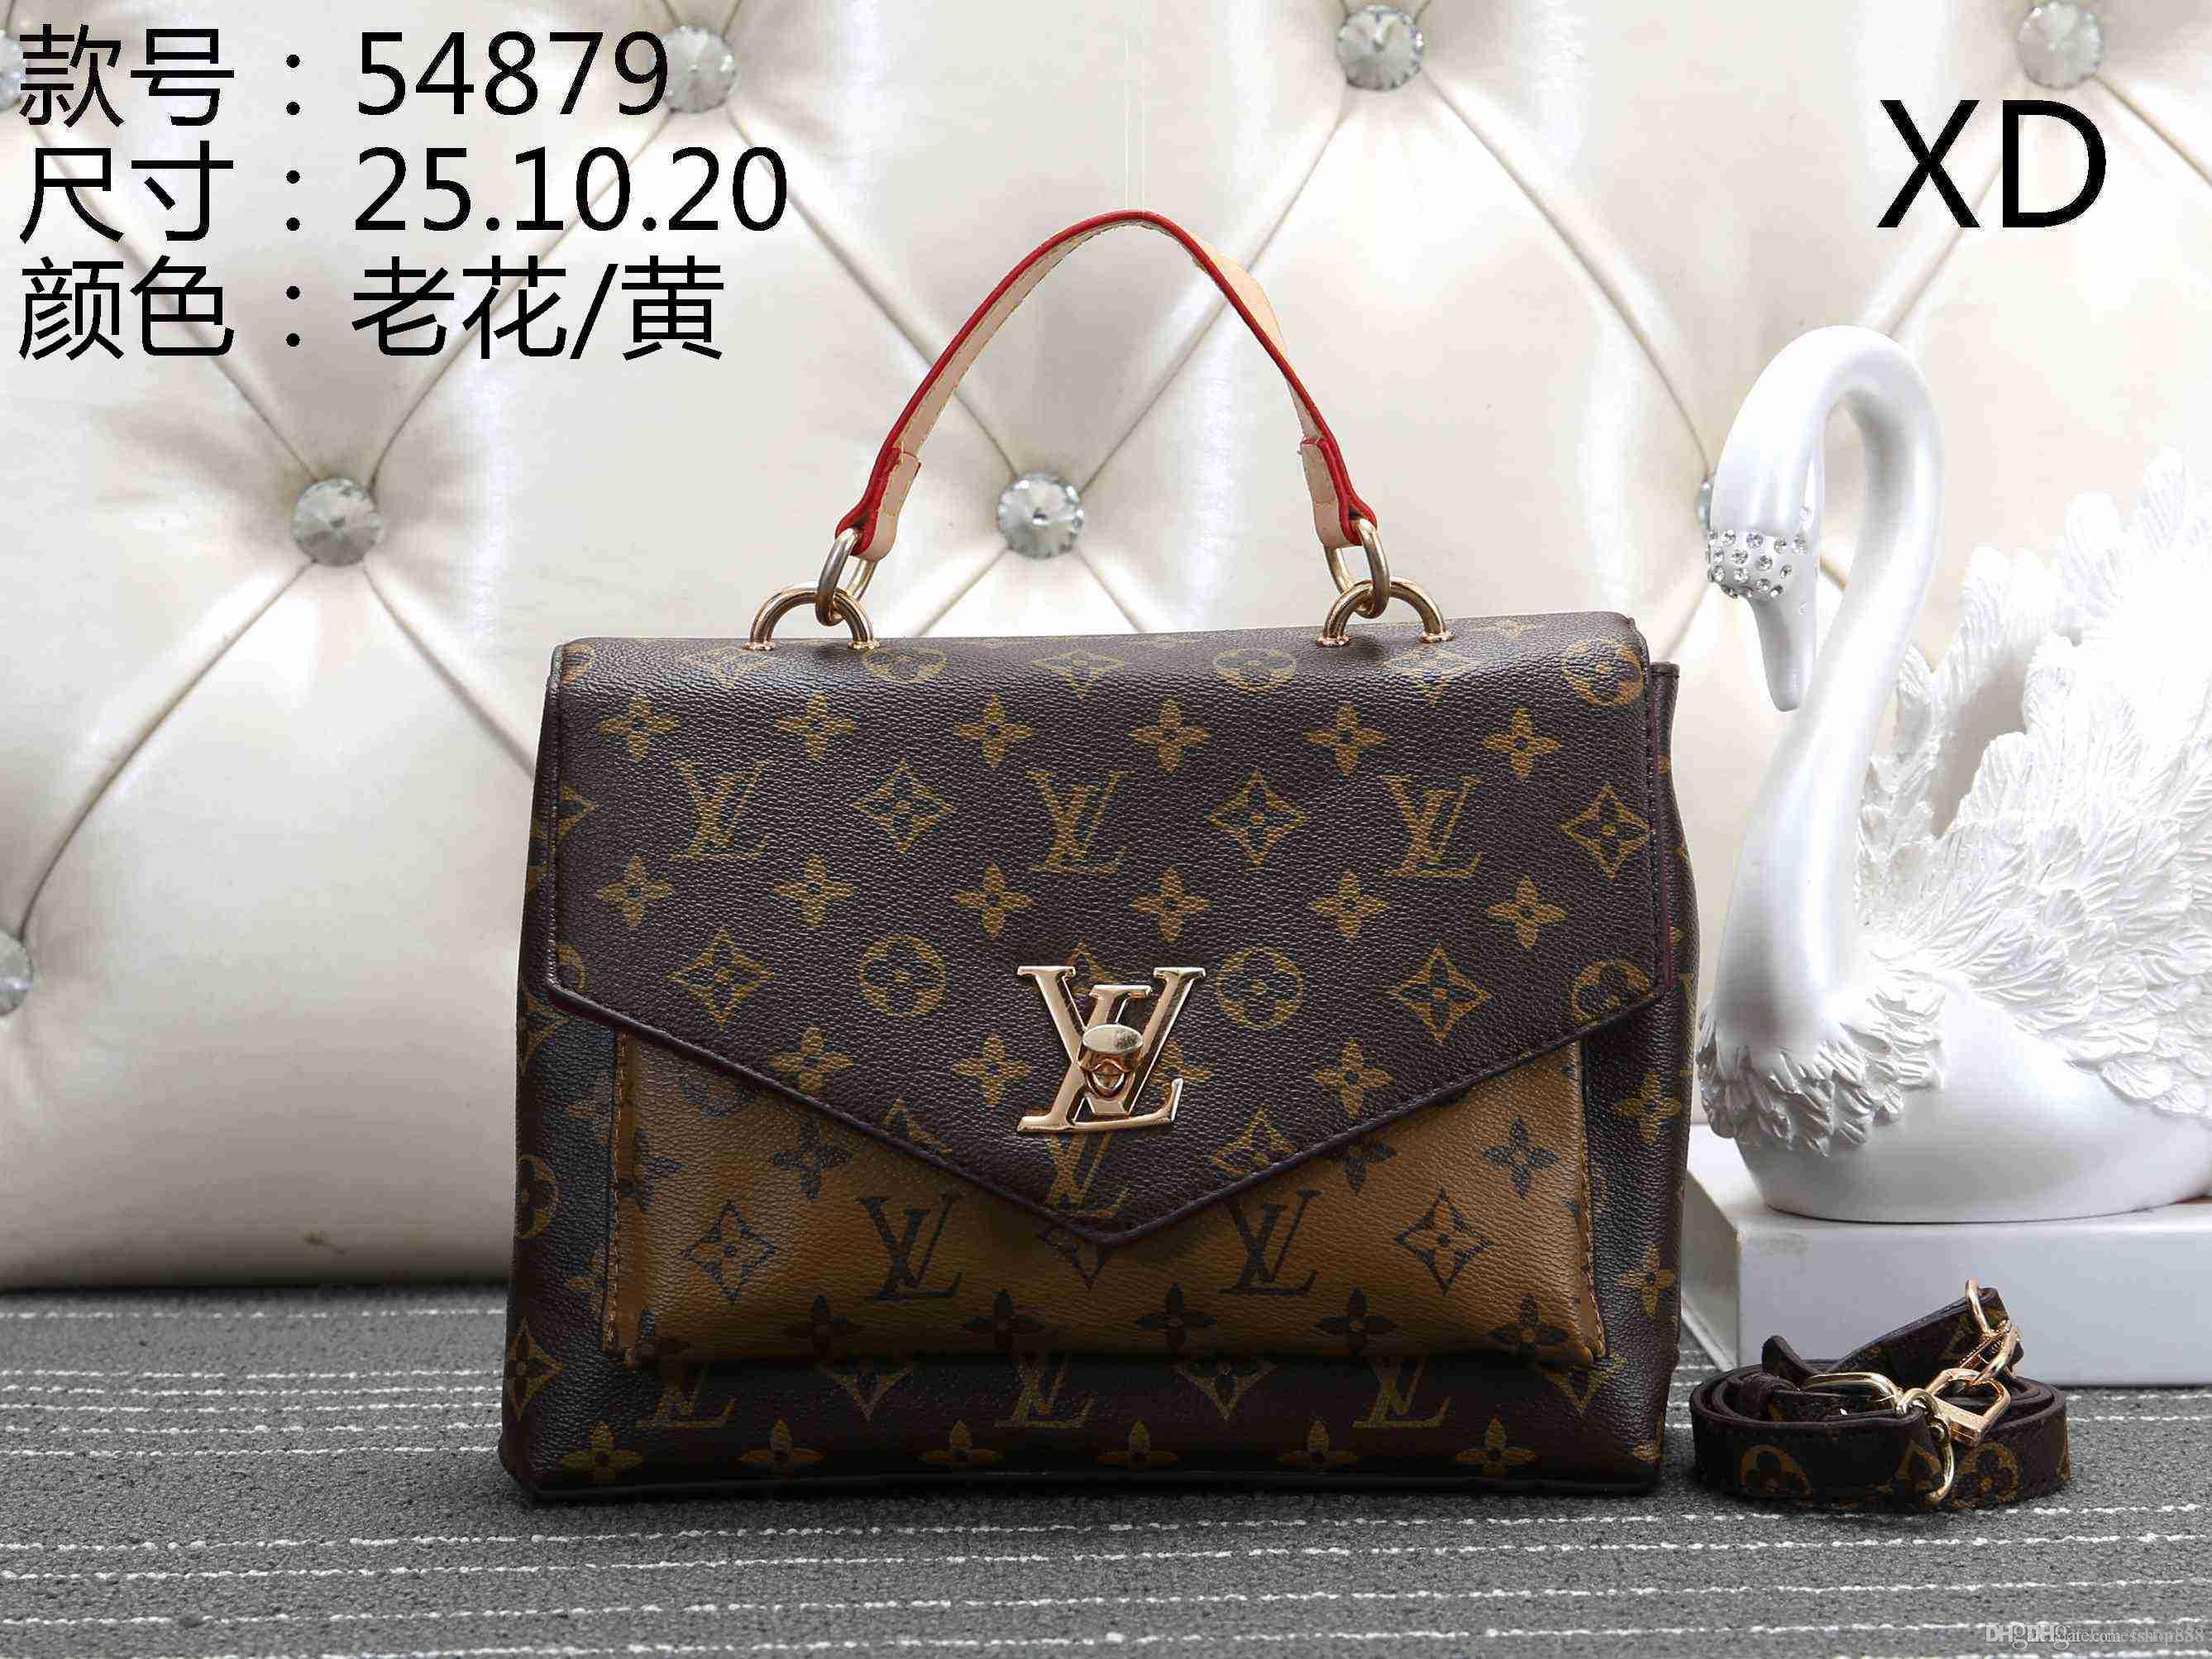 MK 54879 XD NEW Styles Fashion Bags Ladies Handbags Designer Bags Women  Tote Bag Luxury Brands Bags Single Shoulder Bag Online with  33.15 Piece on  ... 862f61a870768